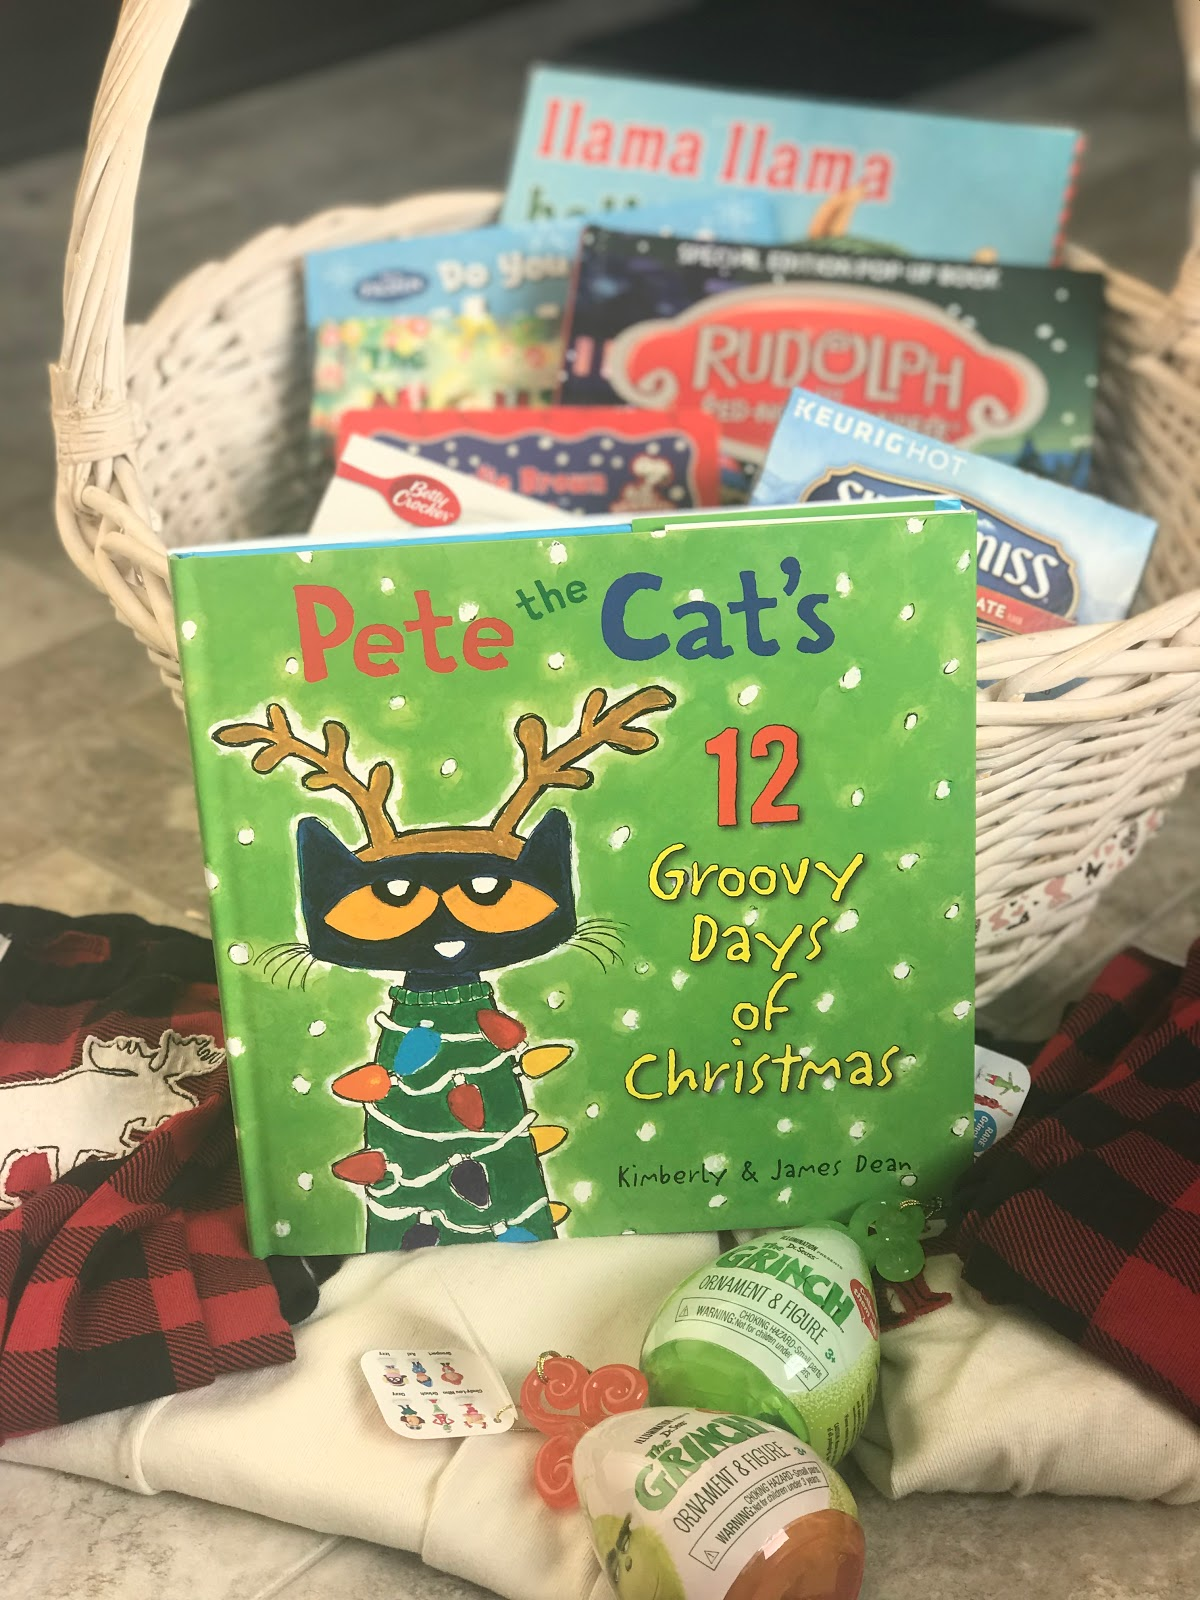 Pete the Cat's 12 groovy Days of Christmas Giveaway